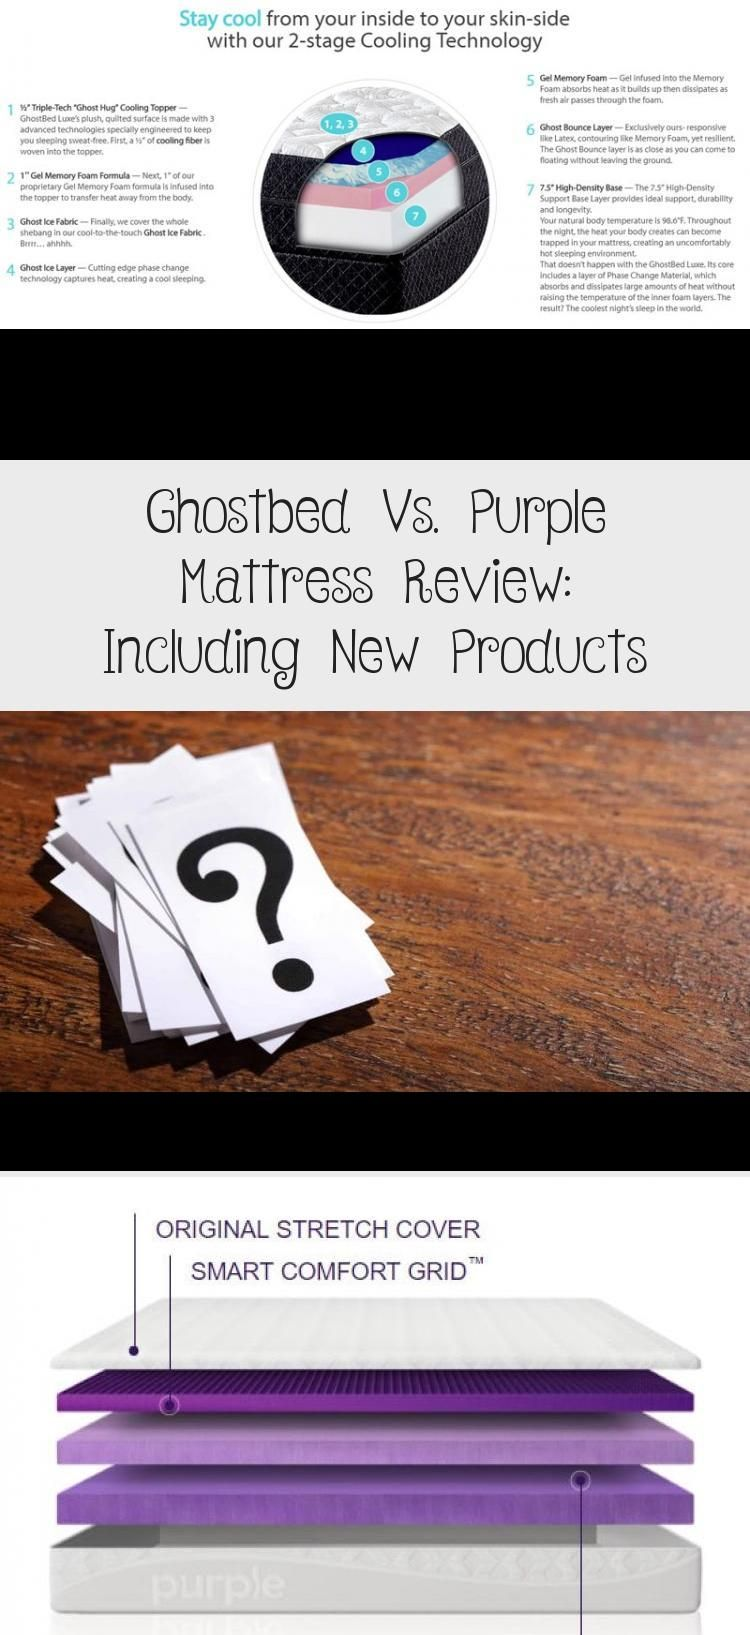 Ghostbed Vs Purple Mattress Review Purplemattresstwin Purplemattresssheets Purplemattresscommerc Purple Mattress Purple Mattress Reviews Mattresses Reviews